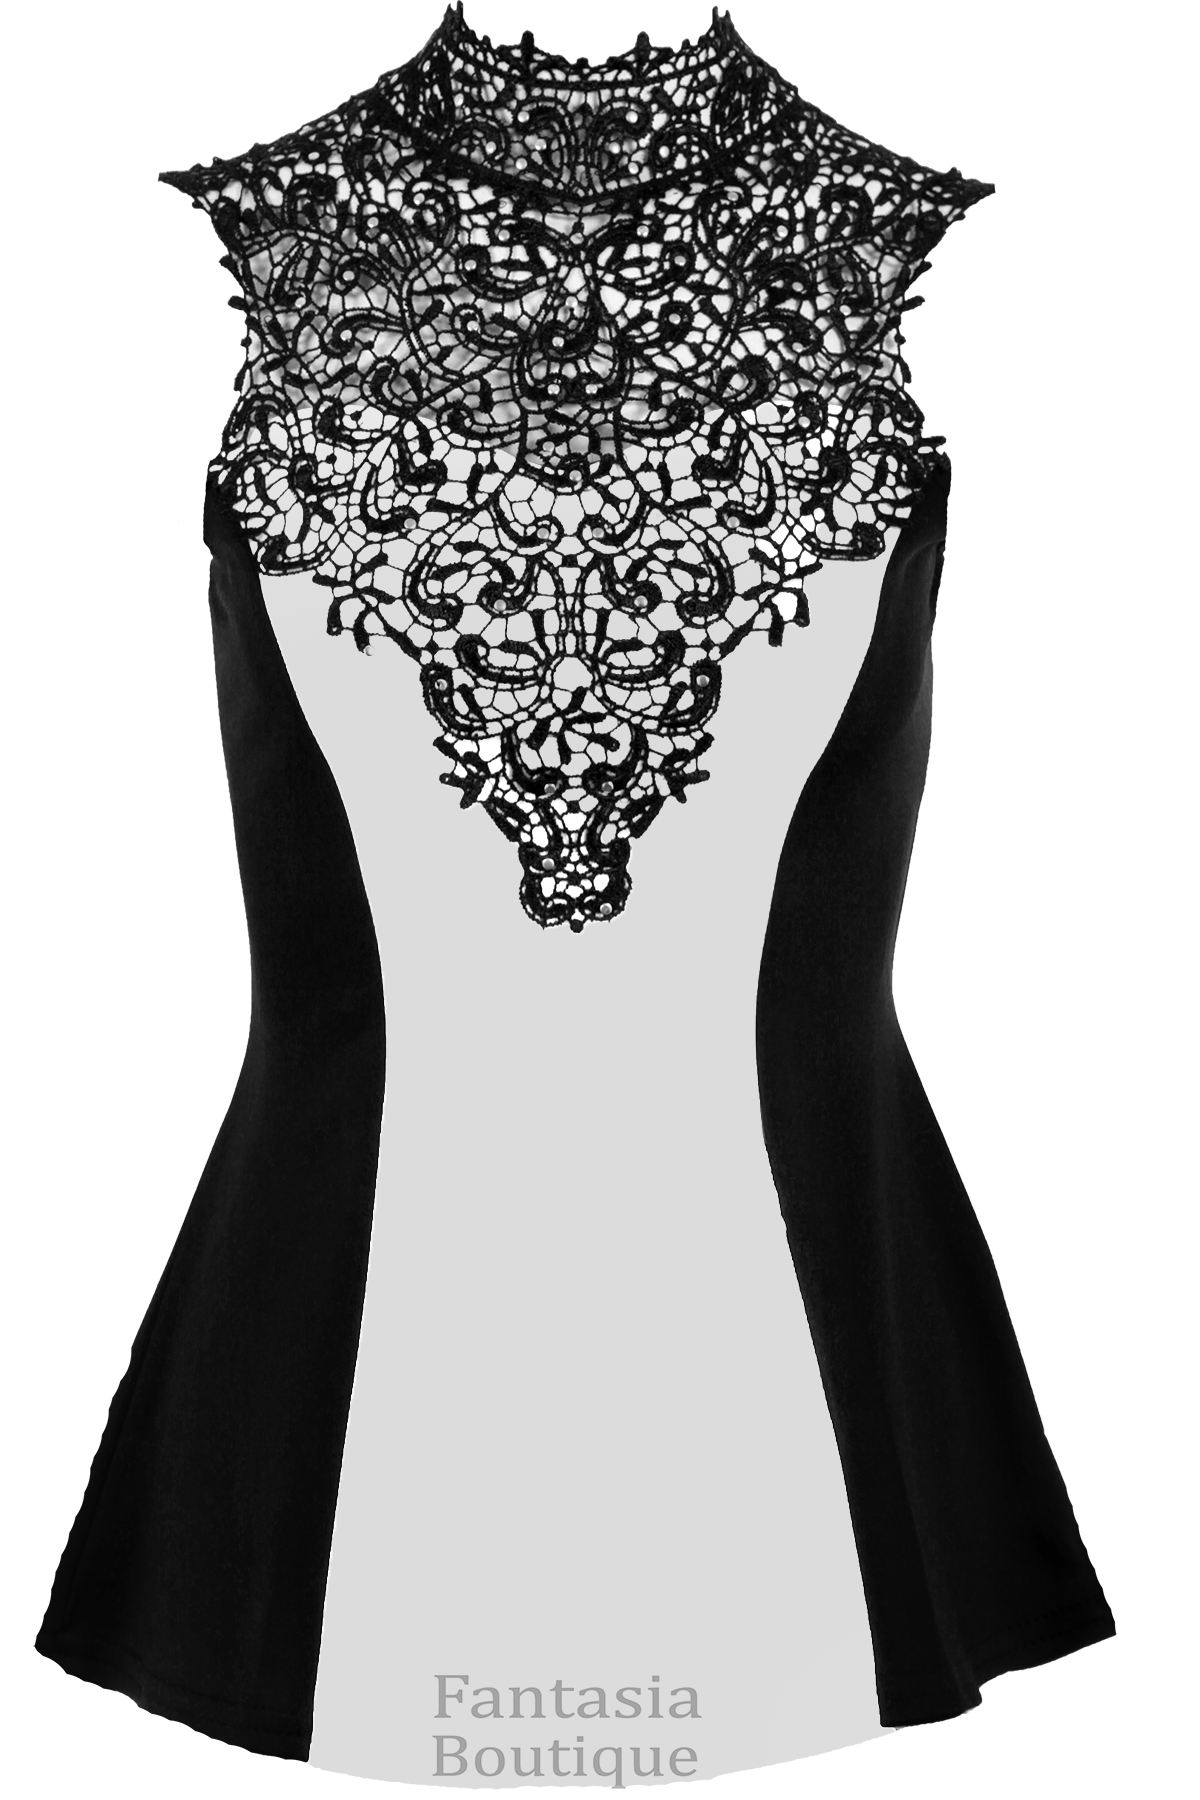 Ladies Sleeveless Floral Crochet Studded High Neck Contrast Flared Peplum Top